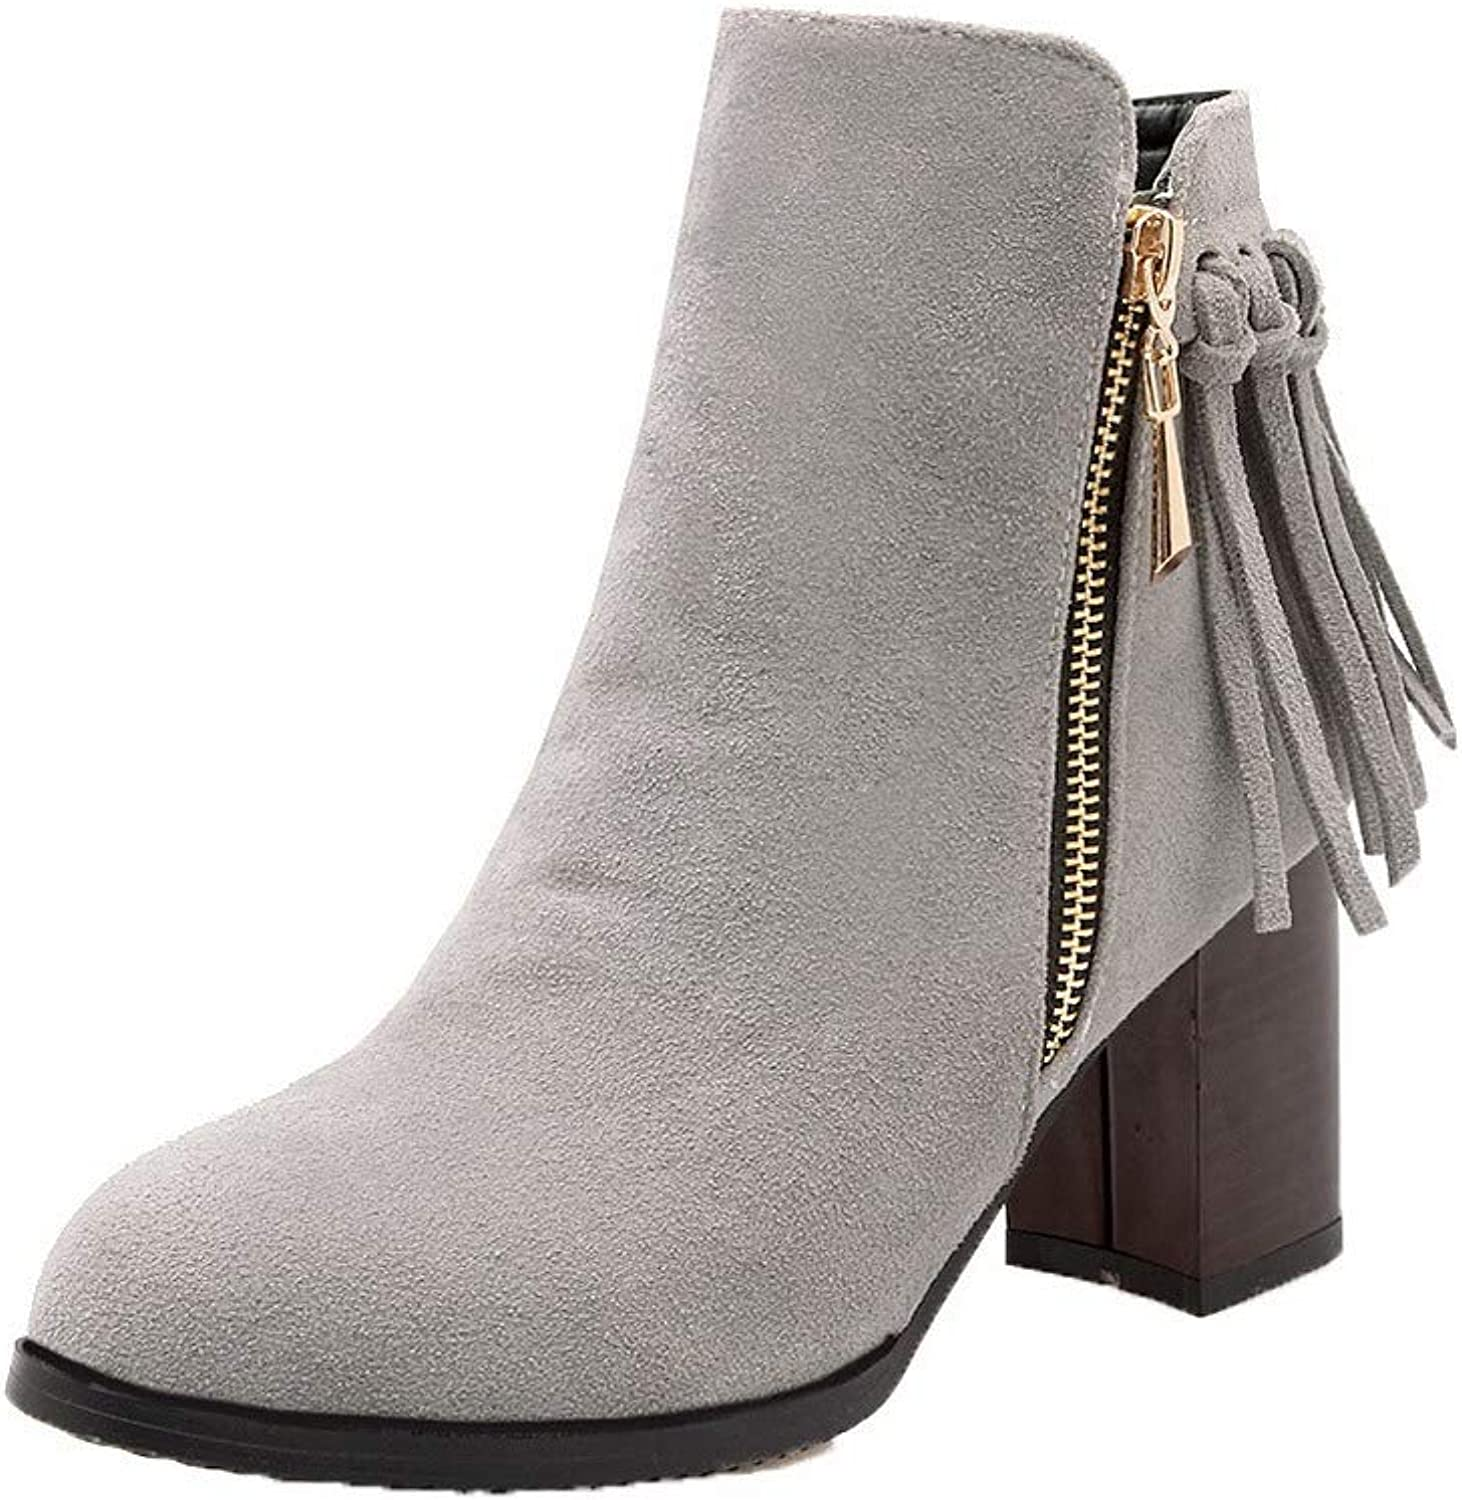 WeenFashion Women's Frosted Ankle-High Solid Zipper High-Heels Boots, AMGXX122708